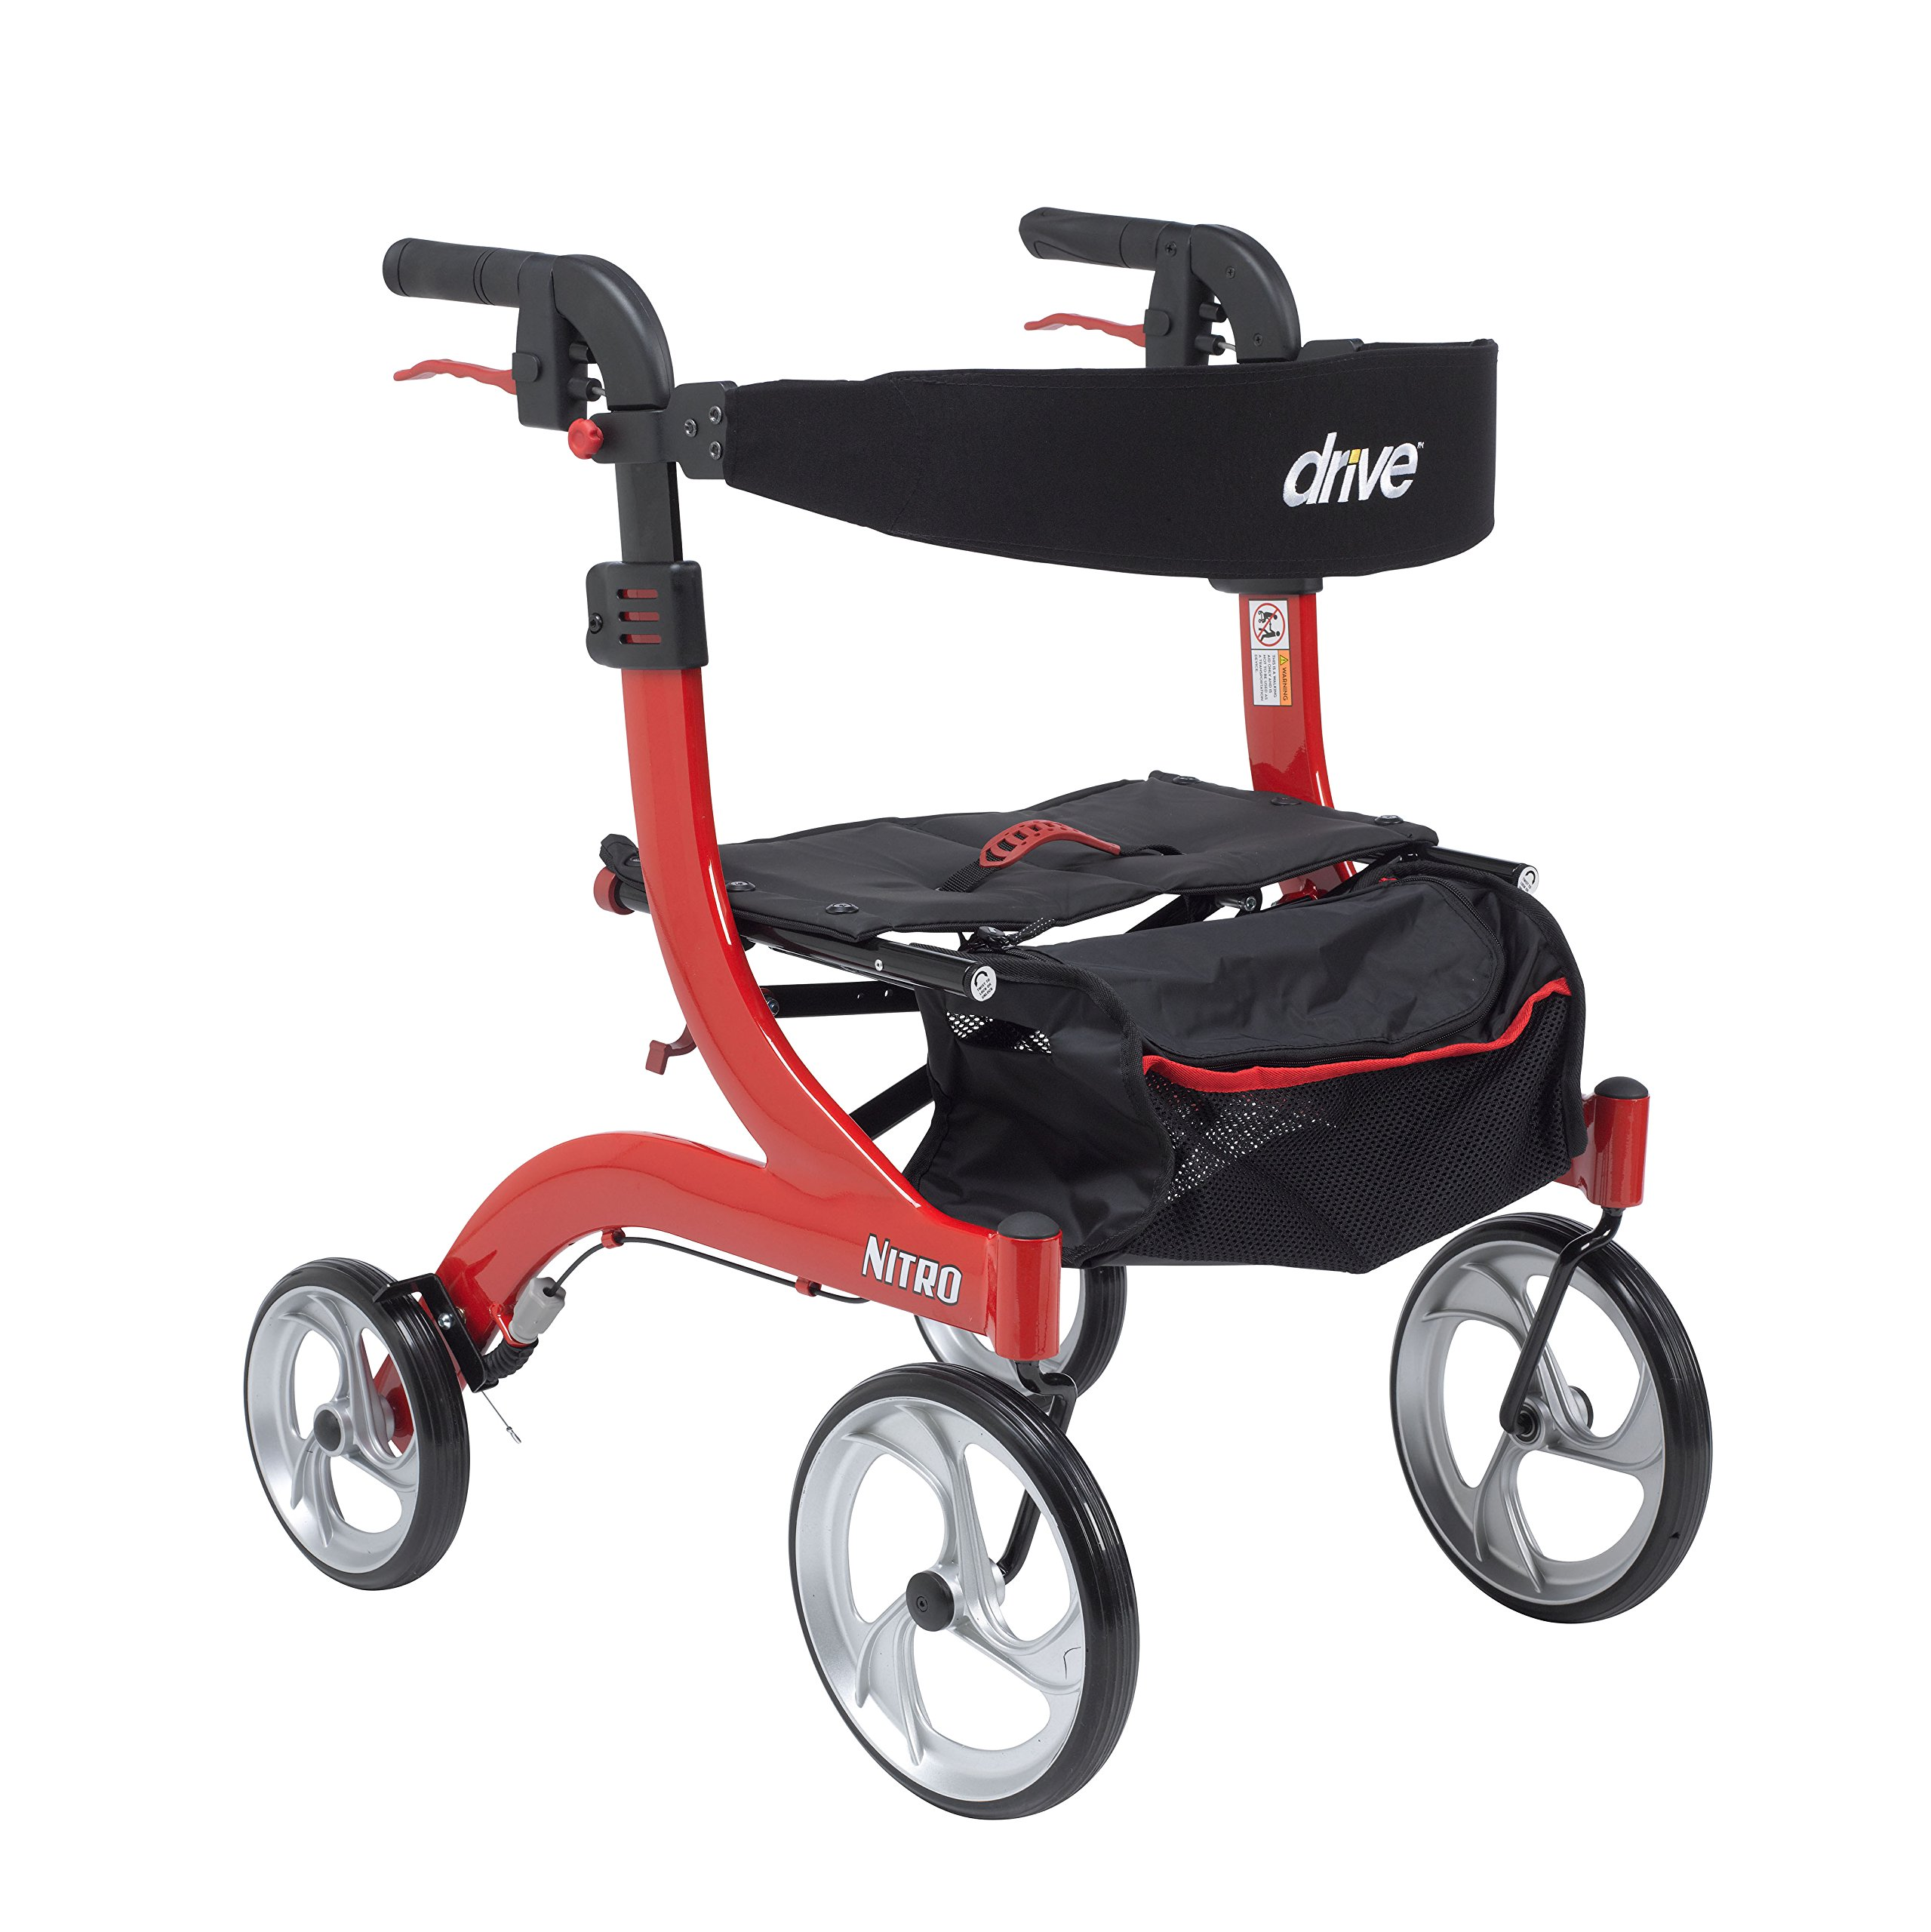 Drive Medical RTL10266-H Nitro Euro Style Walker Rollator, Petite, Red by Drive Medical